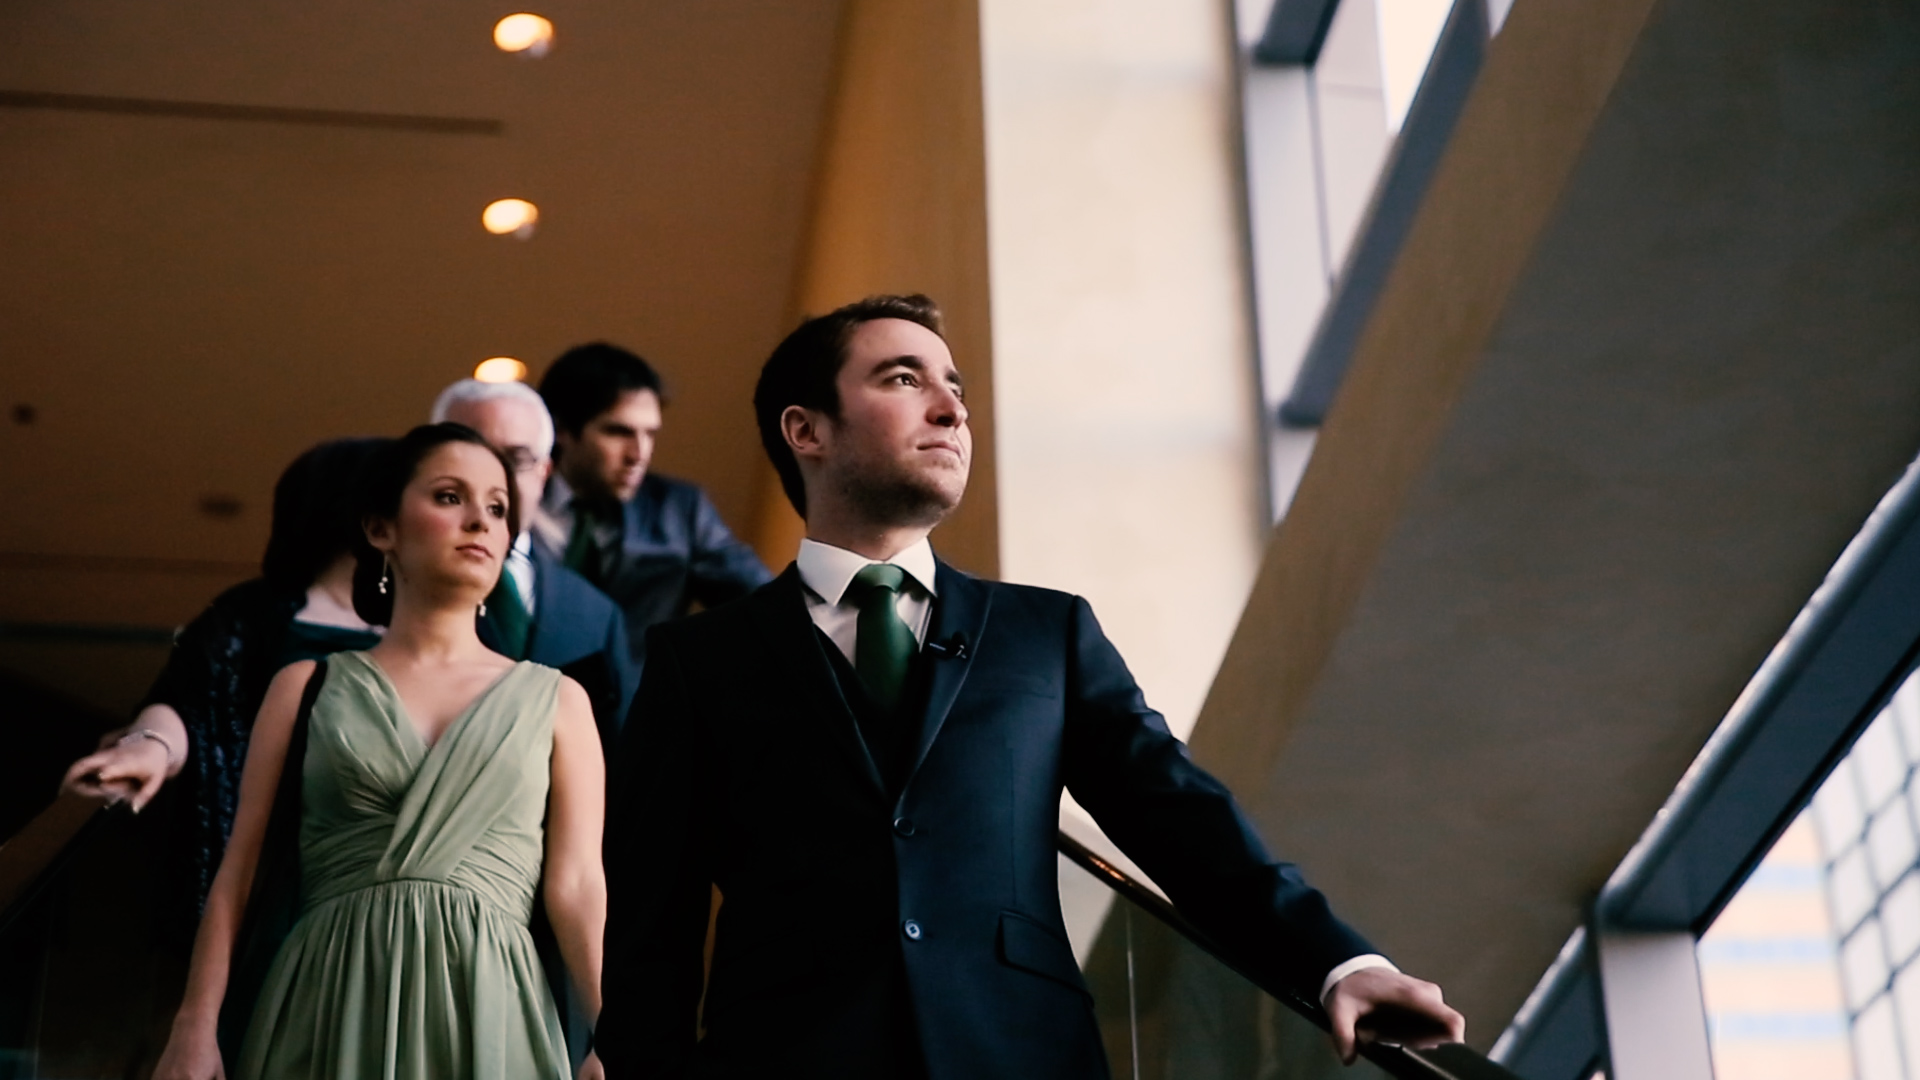 The handsome groom on the way to meet his lovely bride...